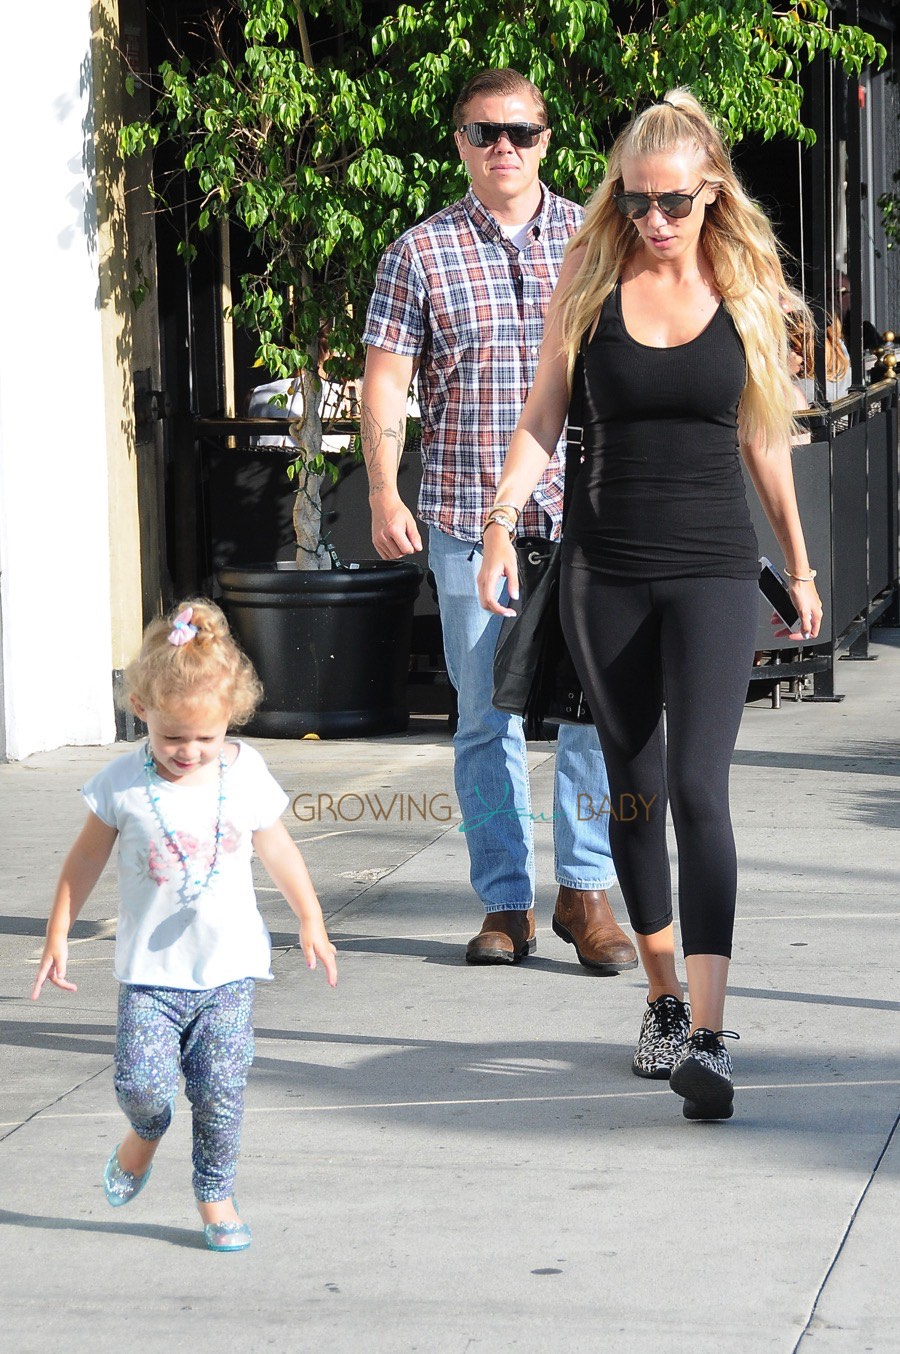 Britax Car Seat With Stroller Petra Ecclestone Out In La With Her Daughter Lavinia Stunt